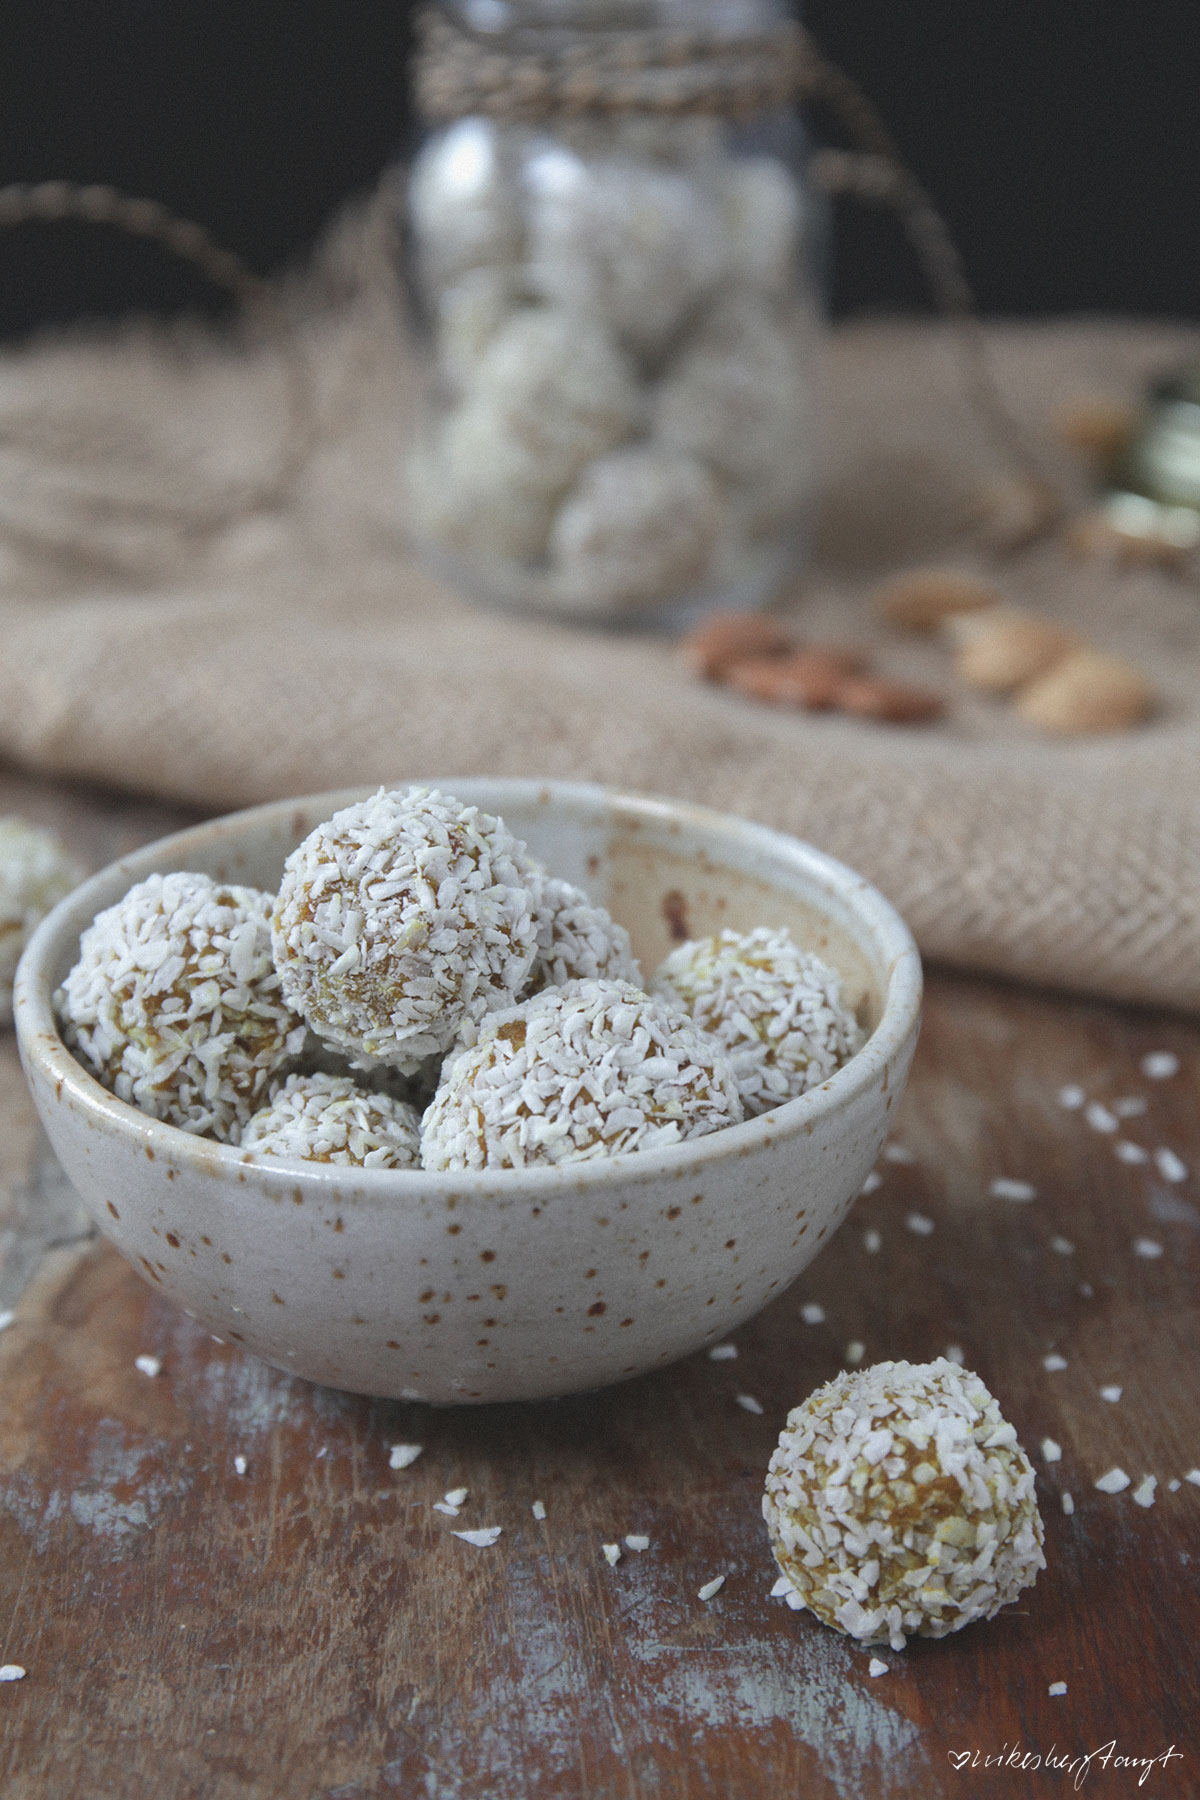 kurkuma energy balls, vegan, raw, bliss balls, golden balls, nikesherztanzt